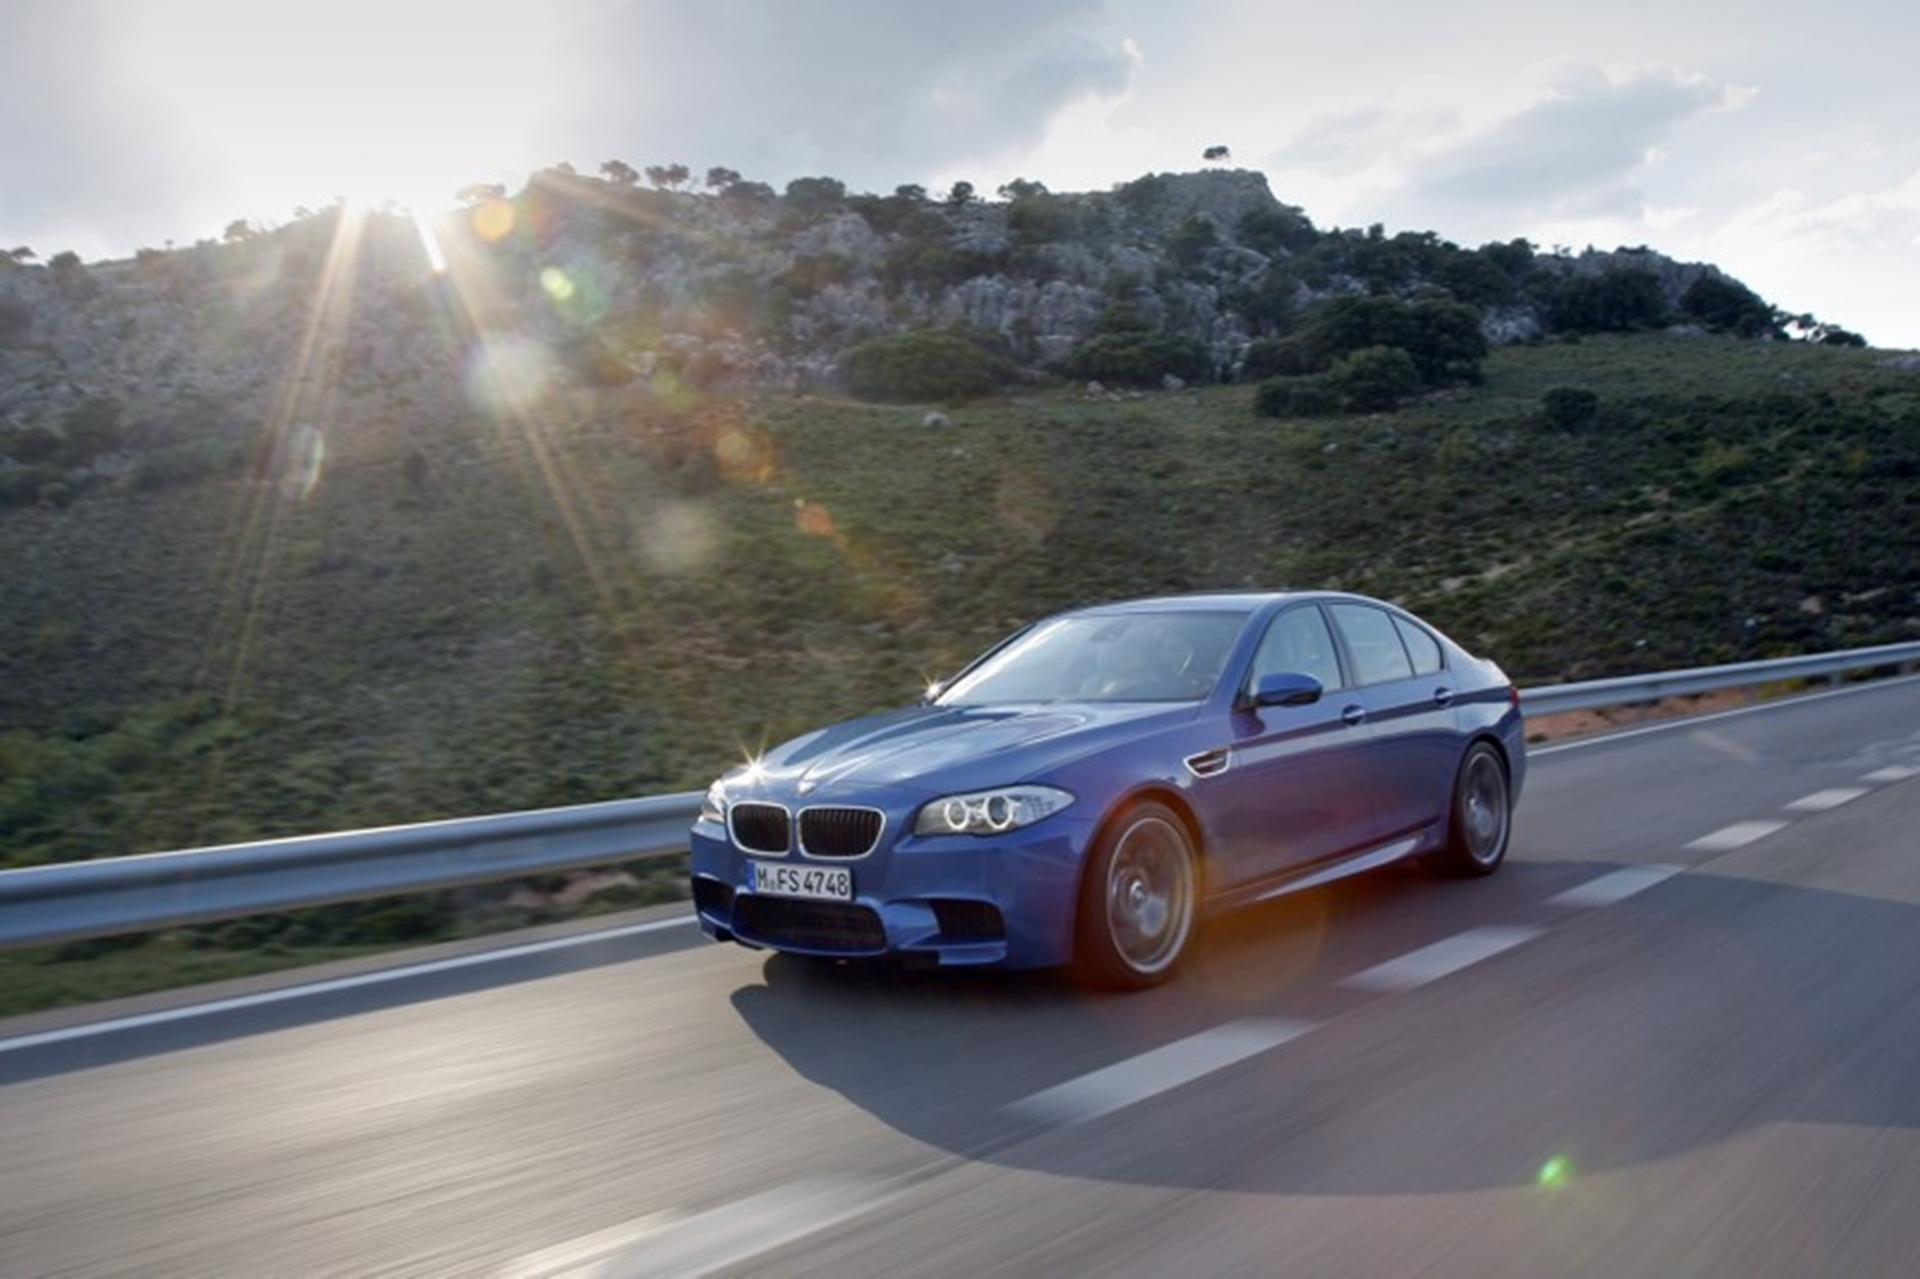 BMW-M5-on-the-road